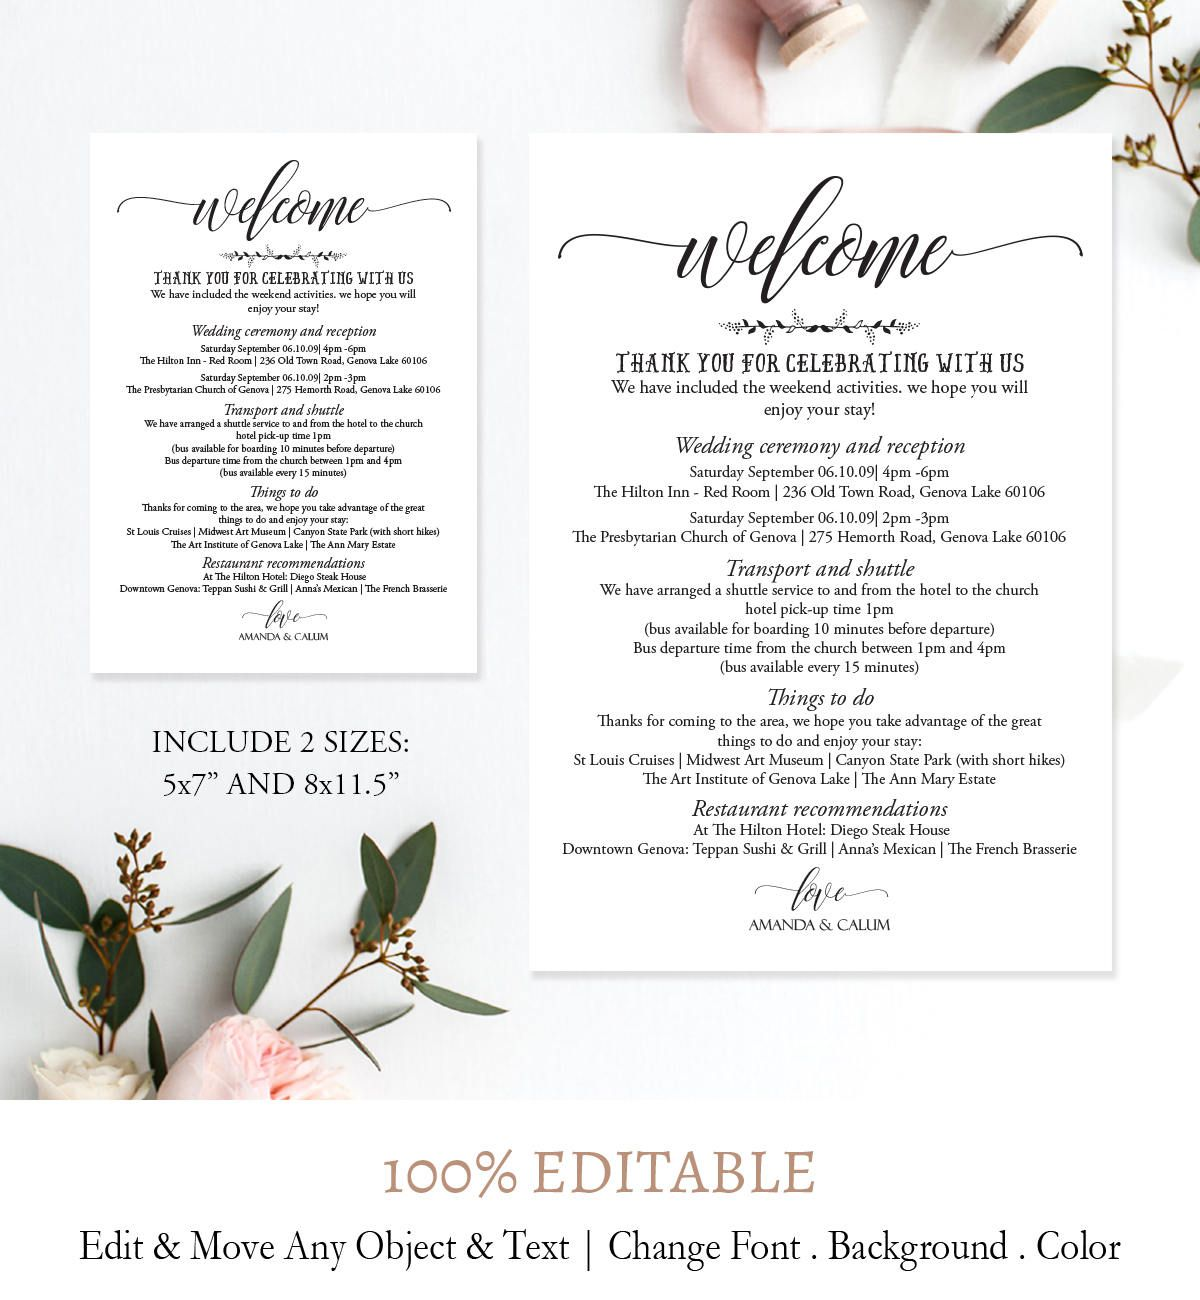 005 Imposing Wedding Weekend Itinerary Template Picture  Day Word Reception Timeline ExcelFull